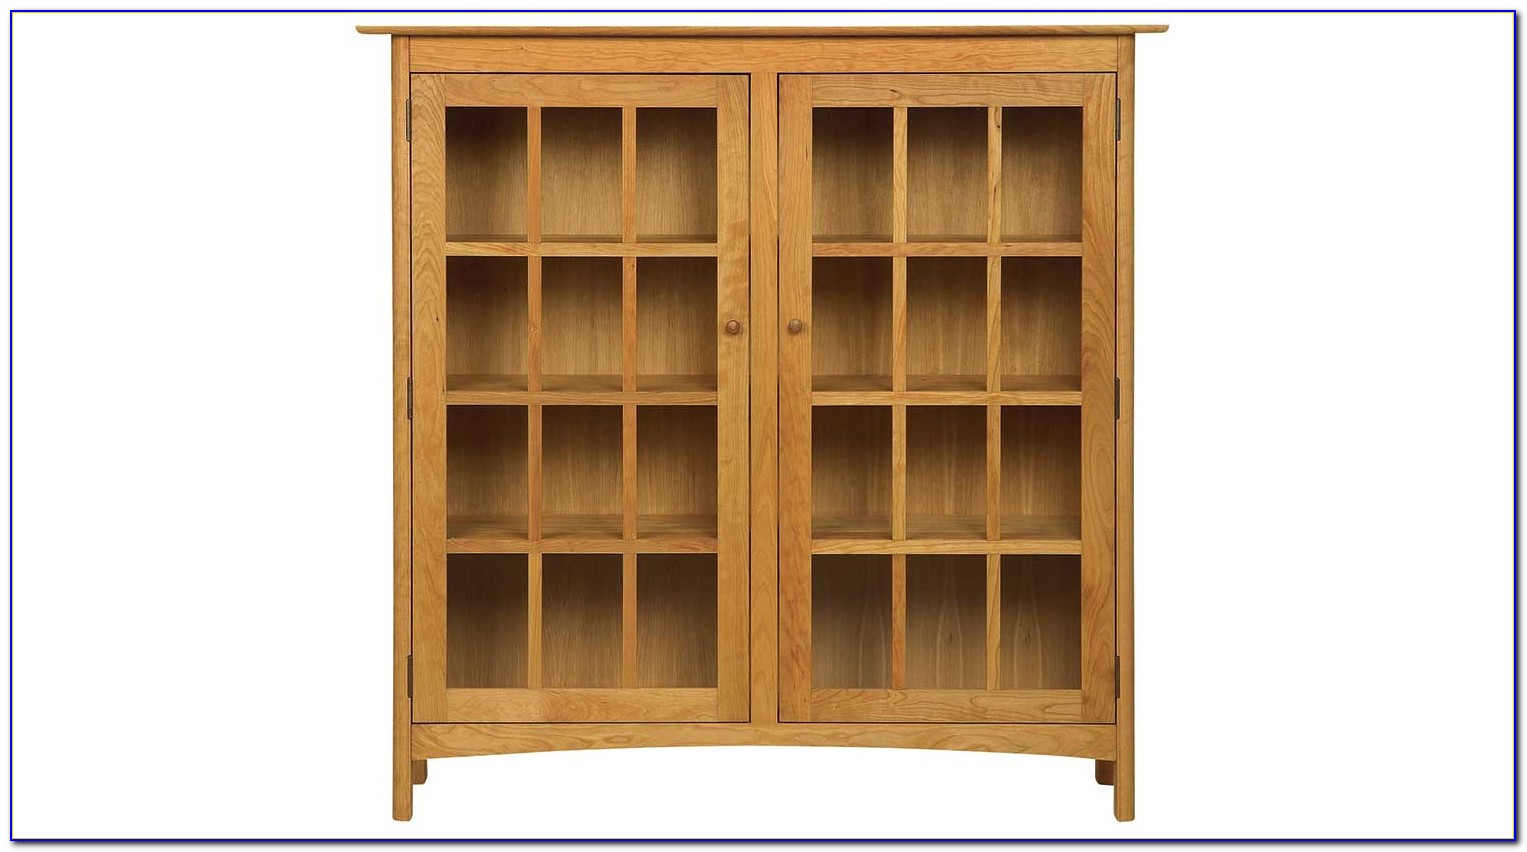 Antique Glass Bookcases With Doors